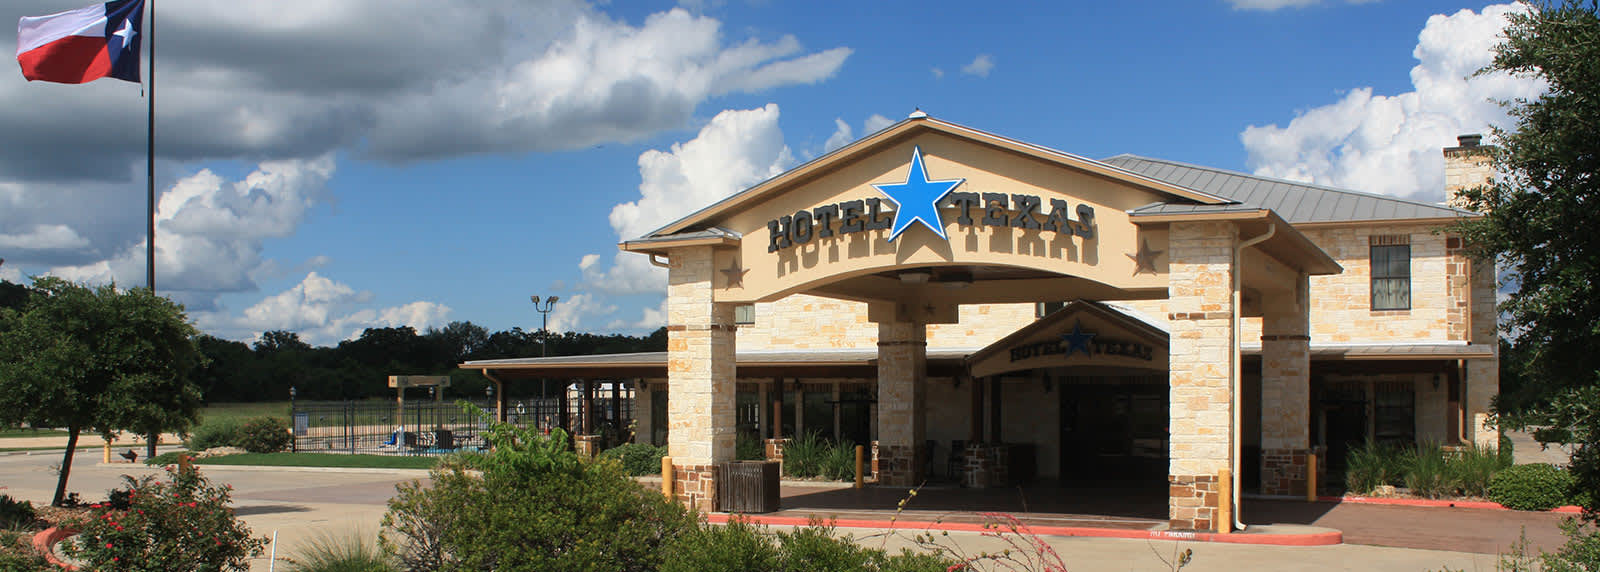 Location of Hotel Texas Hallettsville